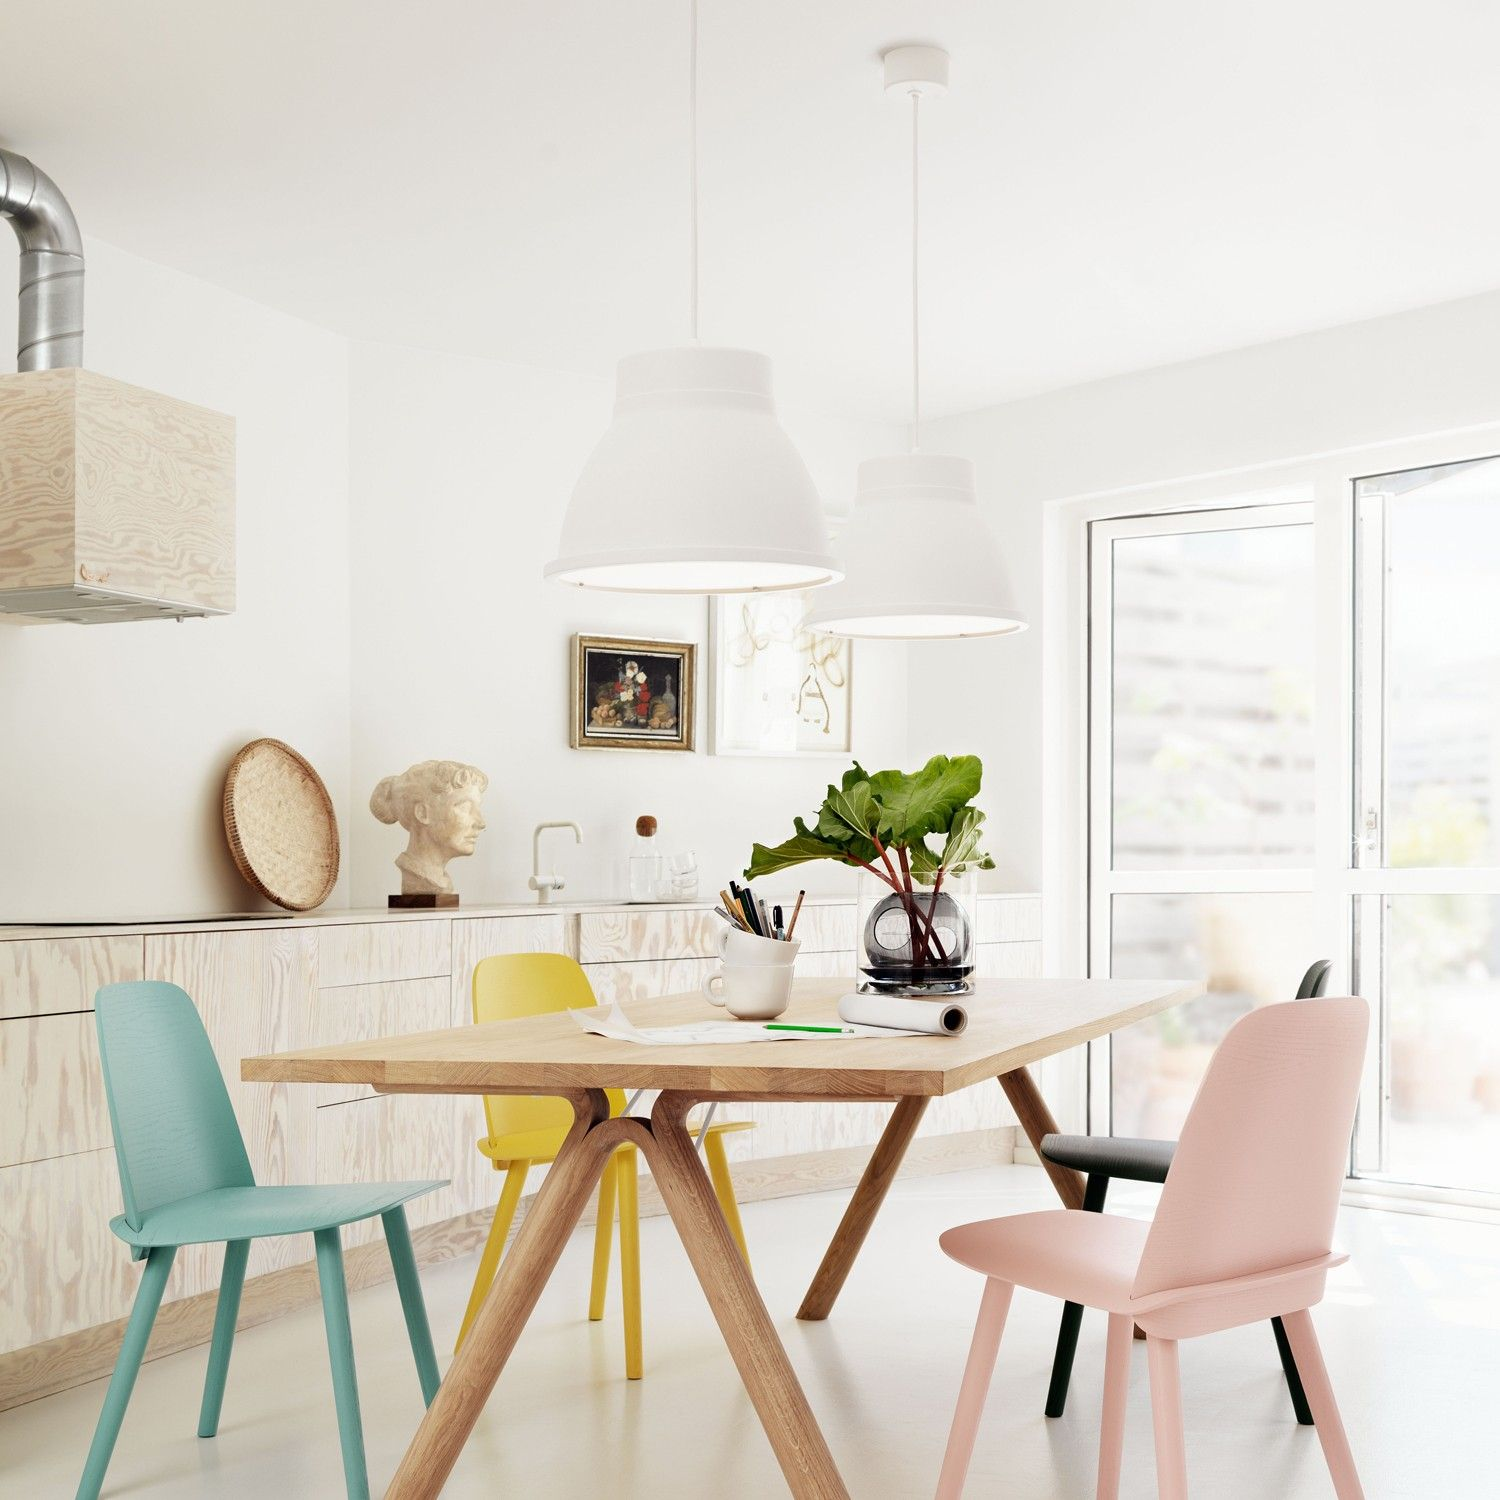 pretty design chairs. These pretty pastel dining chairs add some unique feminine flair to this  simple design